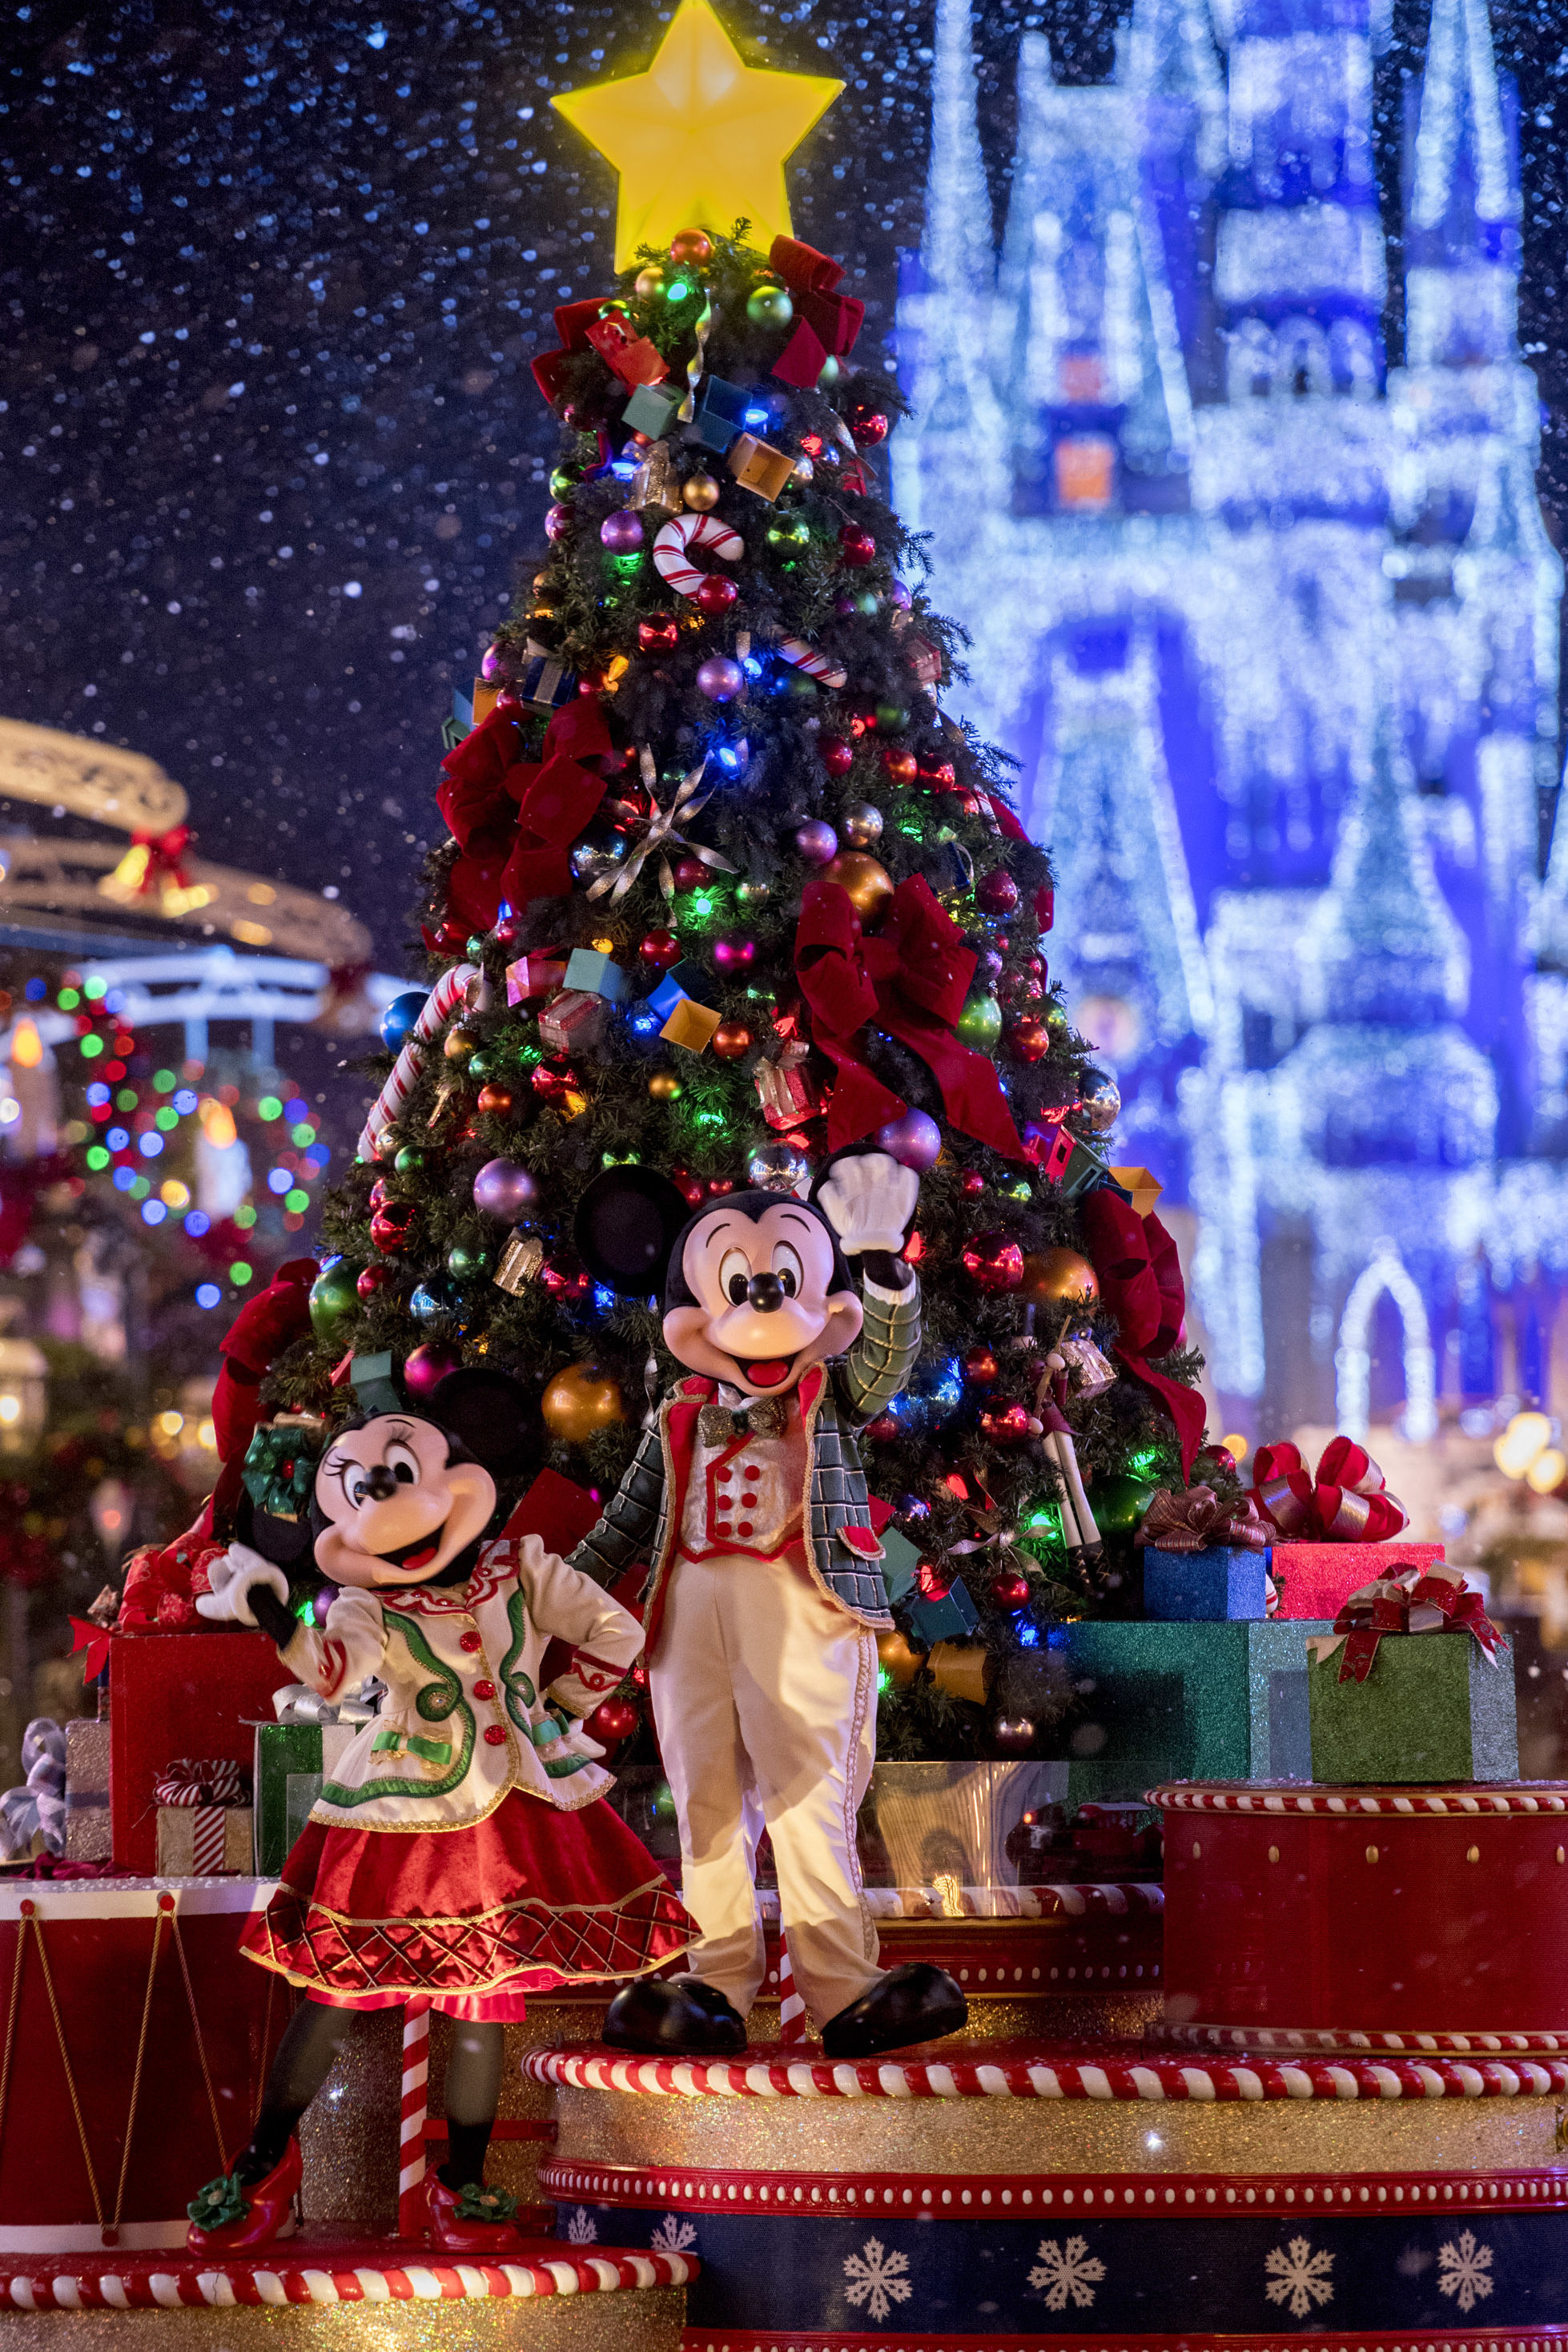 Disney World Just Released Tickets to Their Biggest Christmas Event of the Year